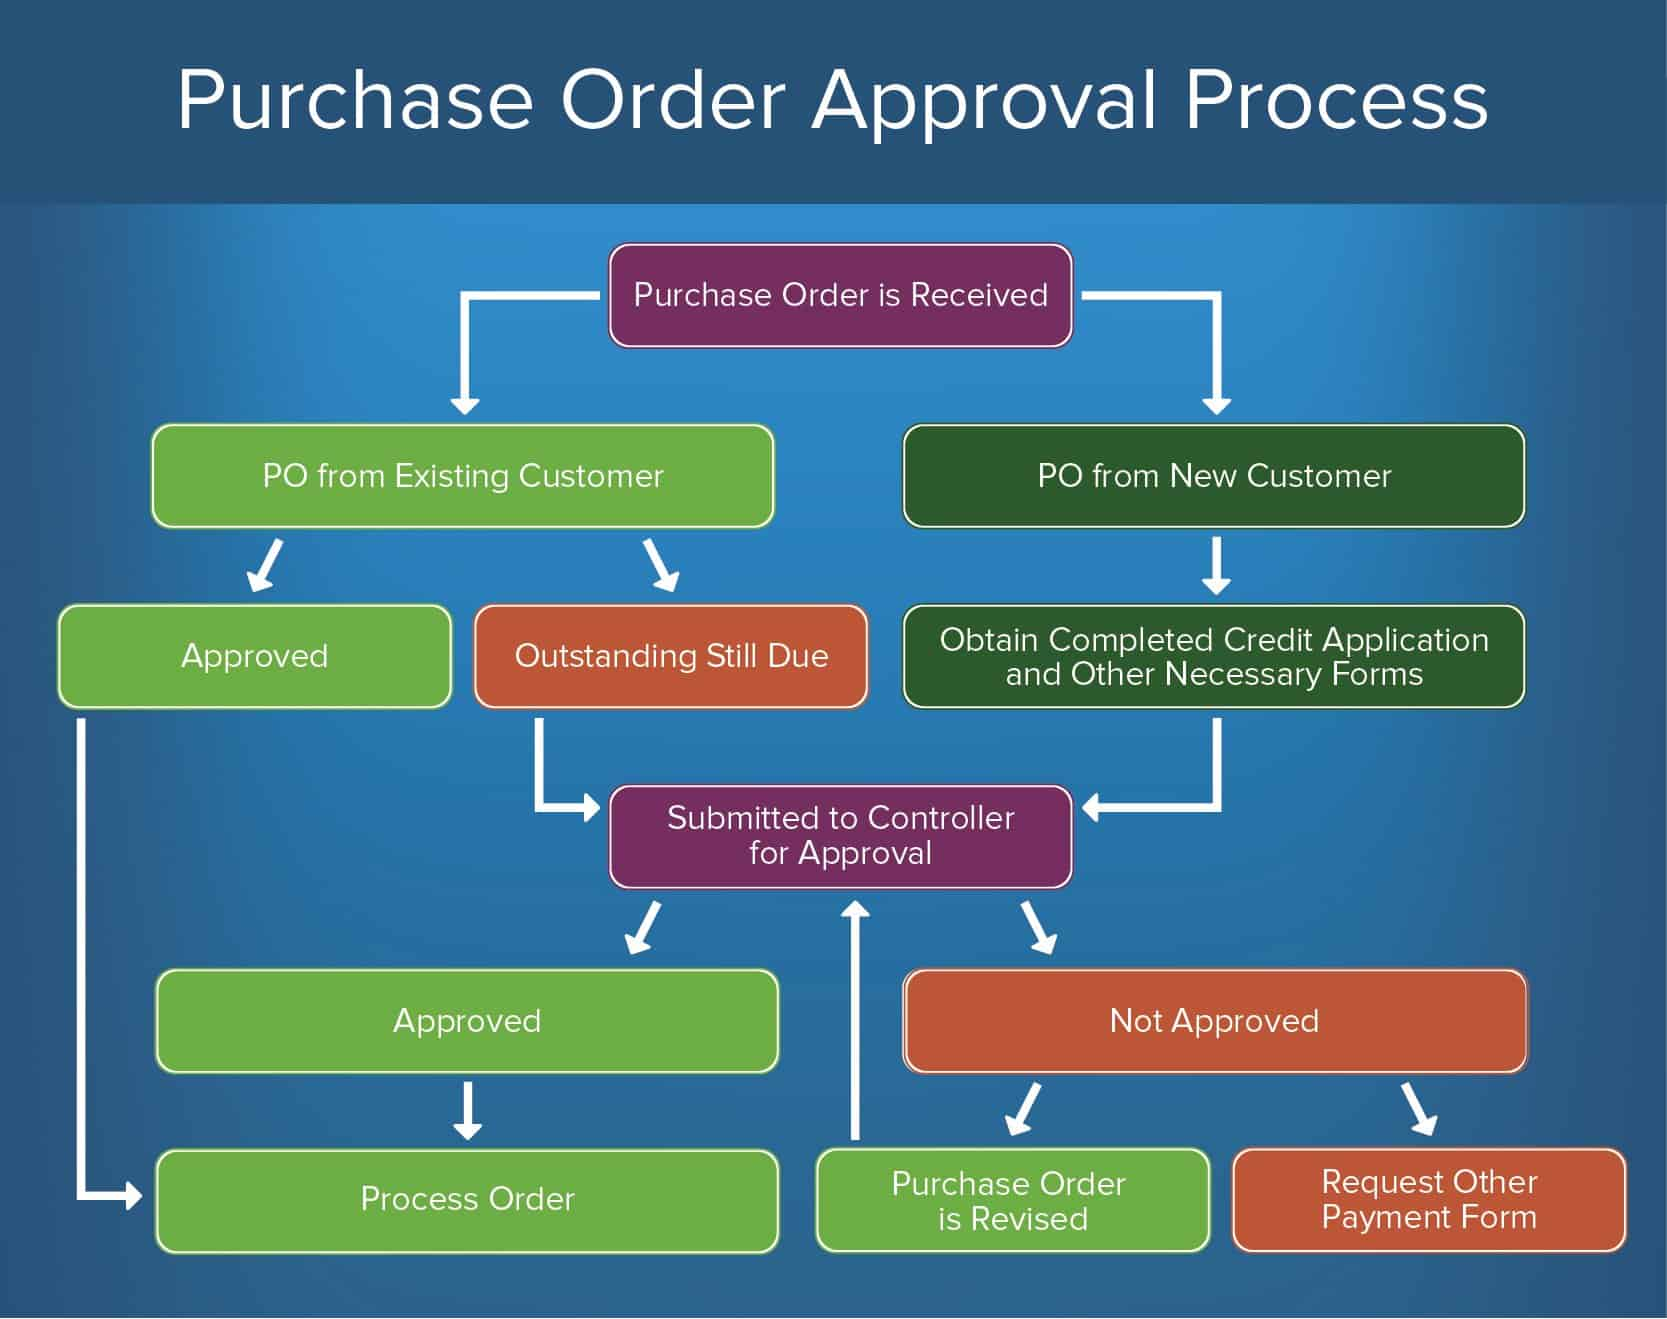 Purchase Order Approval Process